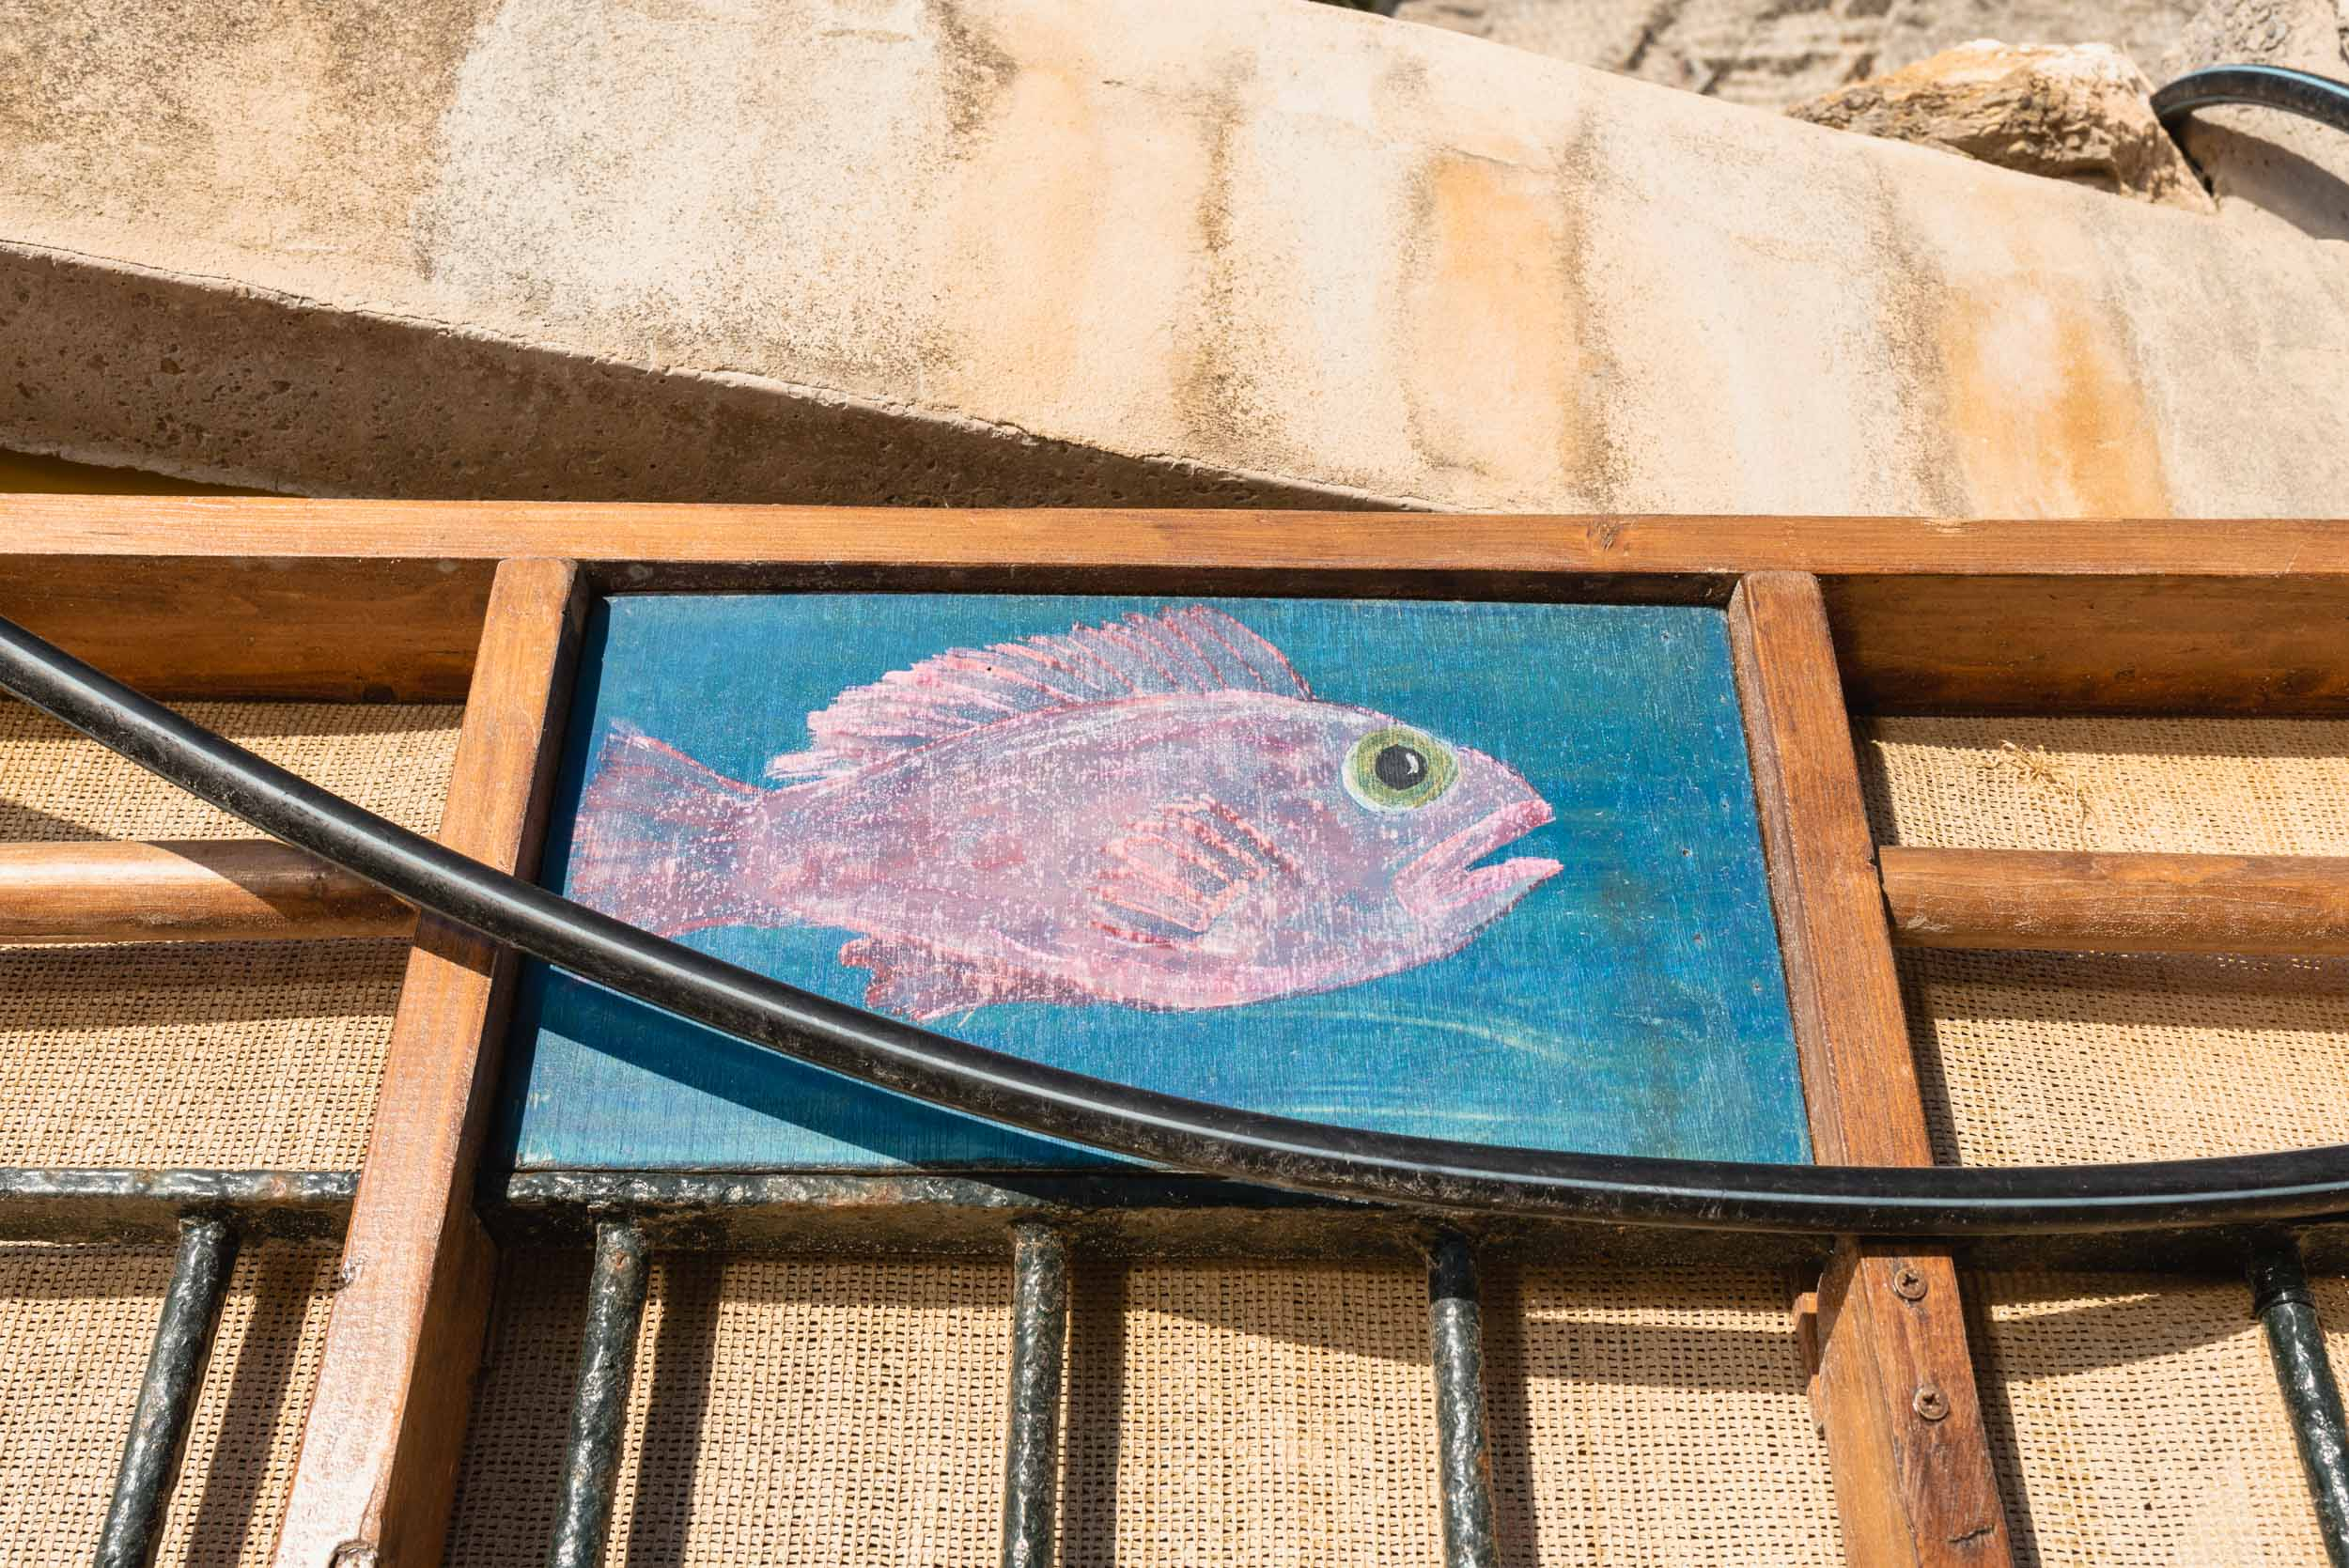 Fish painting on wall in Banyalbufar, Spain